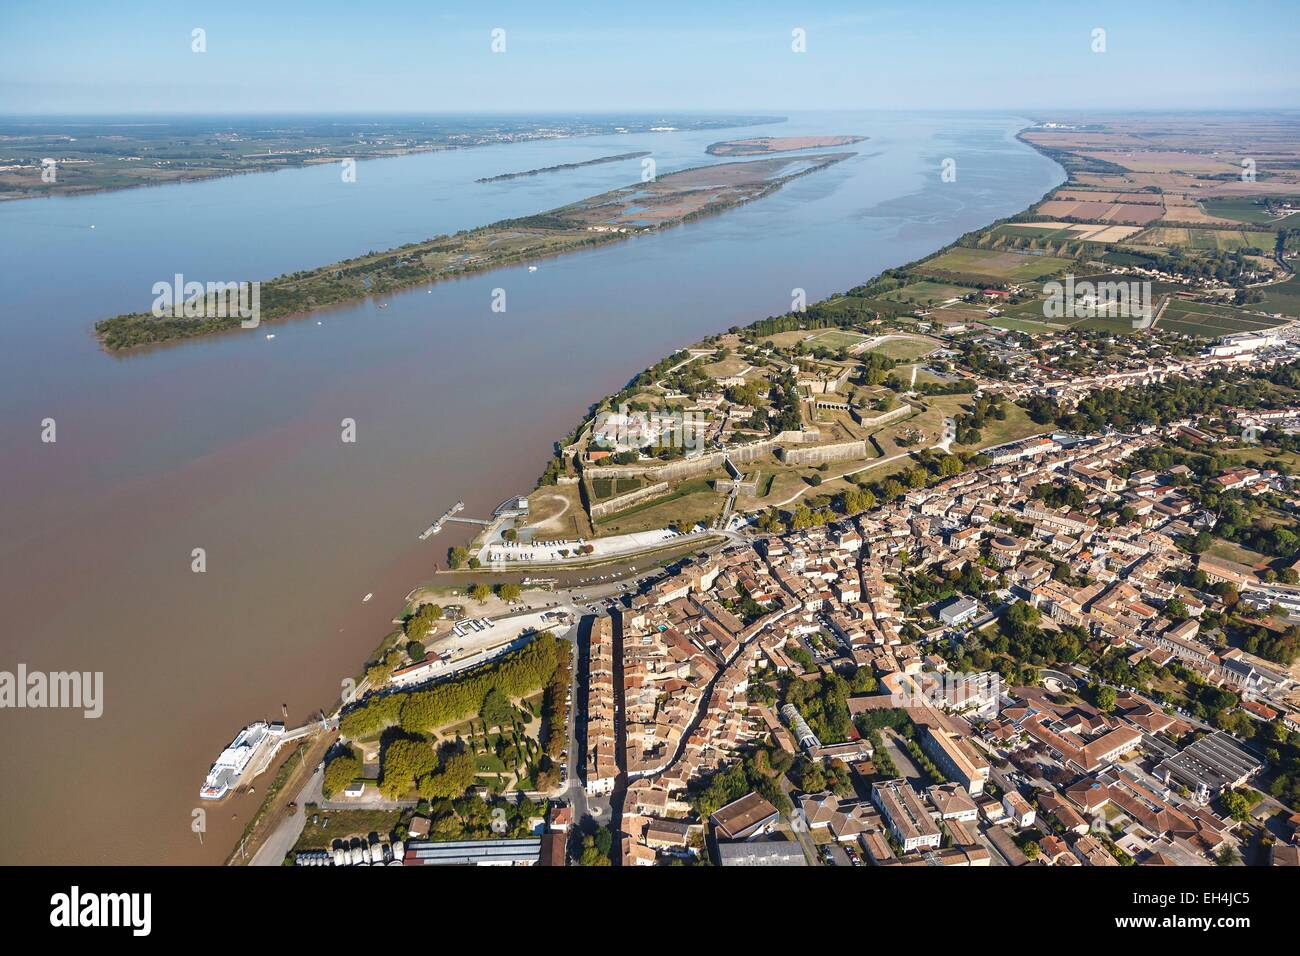 France, Gironde, Blaye, the town and the citadel on the Gironde river, Bouchaud or Nouvelle island, the vasard de - Stock Image